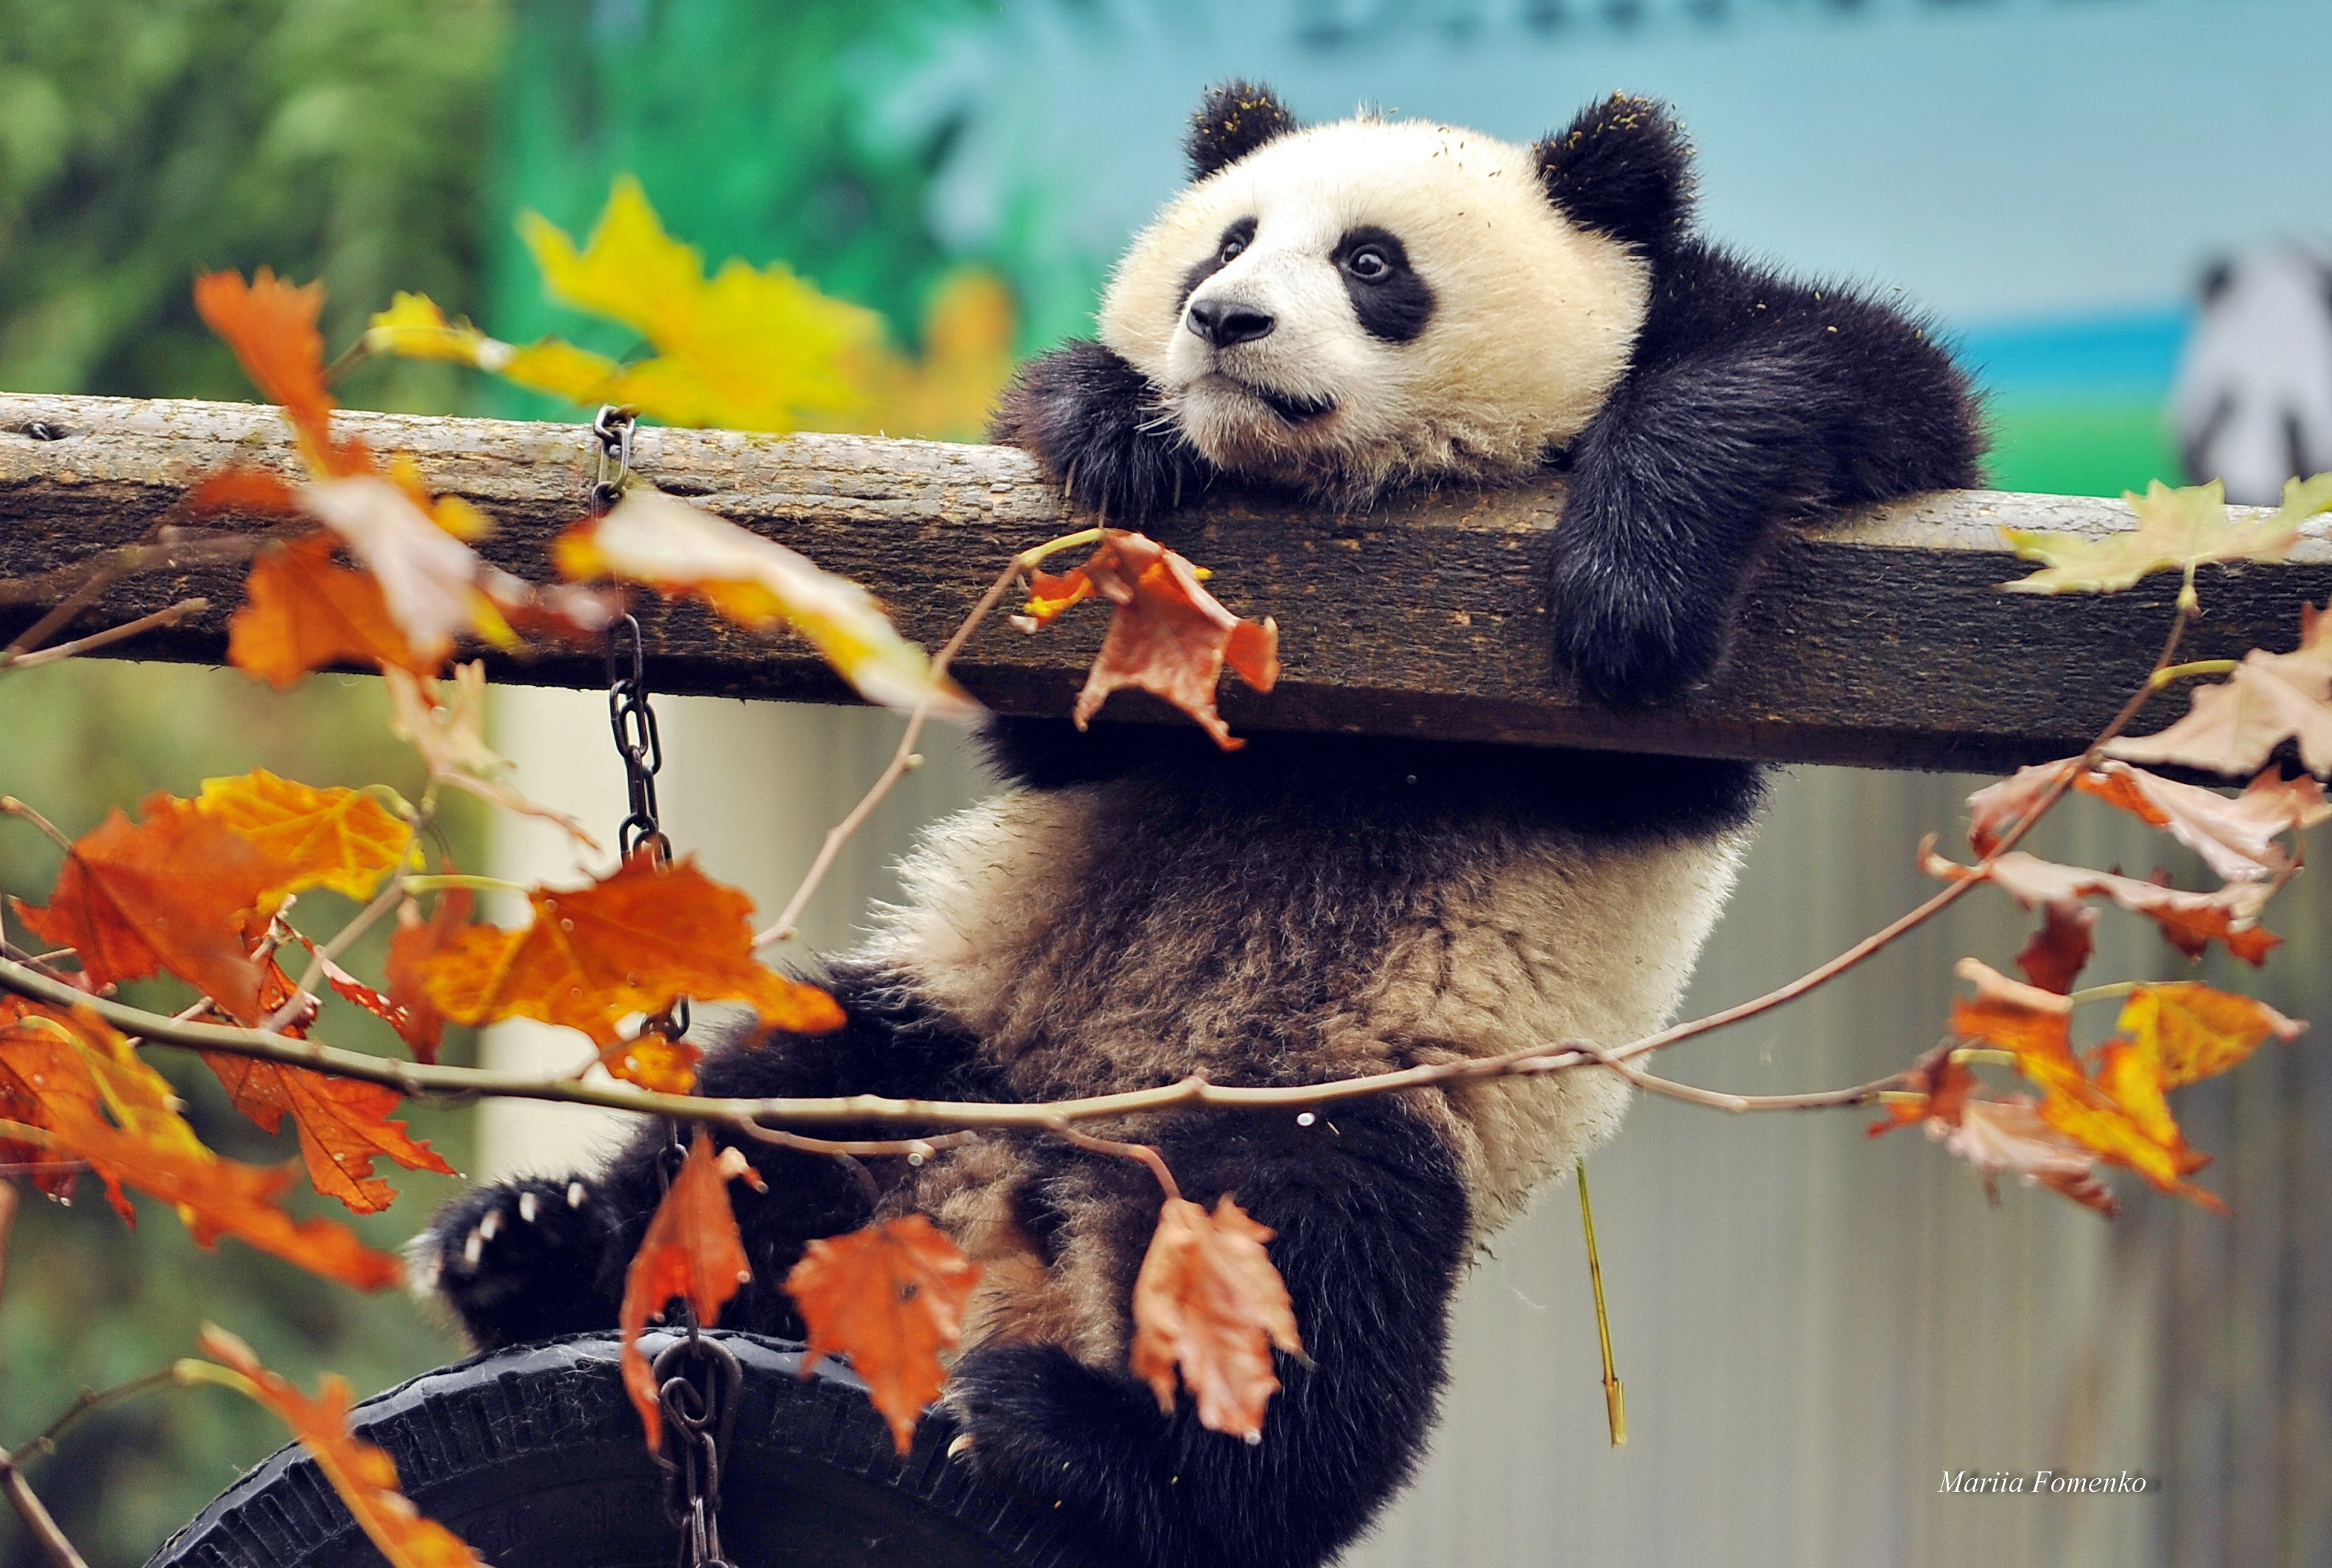 153007 download wallpaper Animals, Panda, Bear, Branch, Wood, Tree screensavers and pictures for free